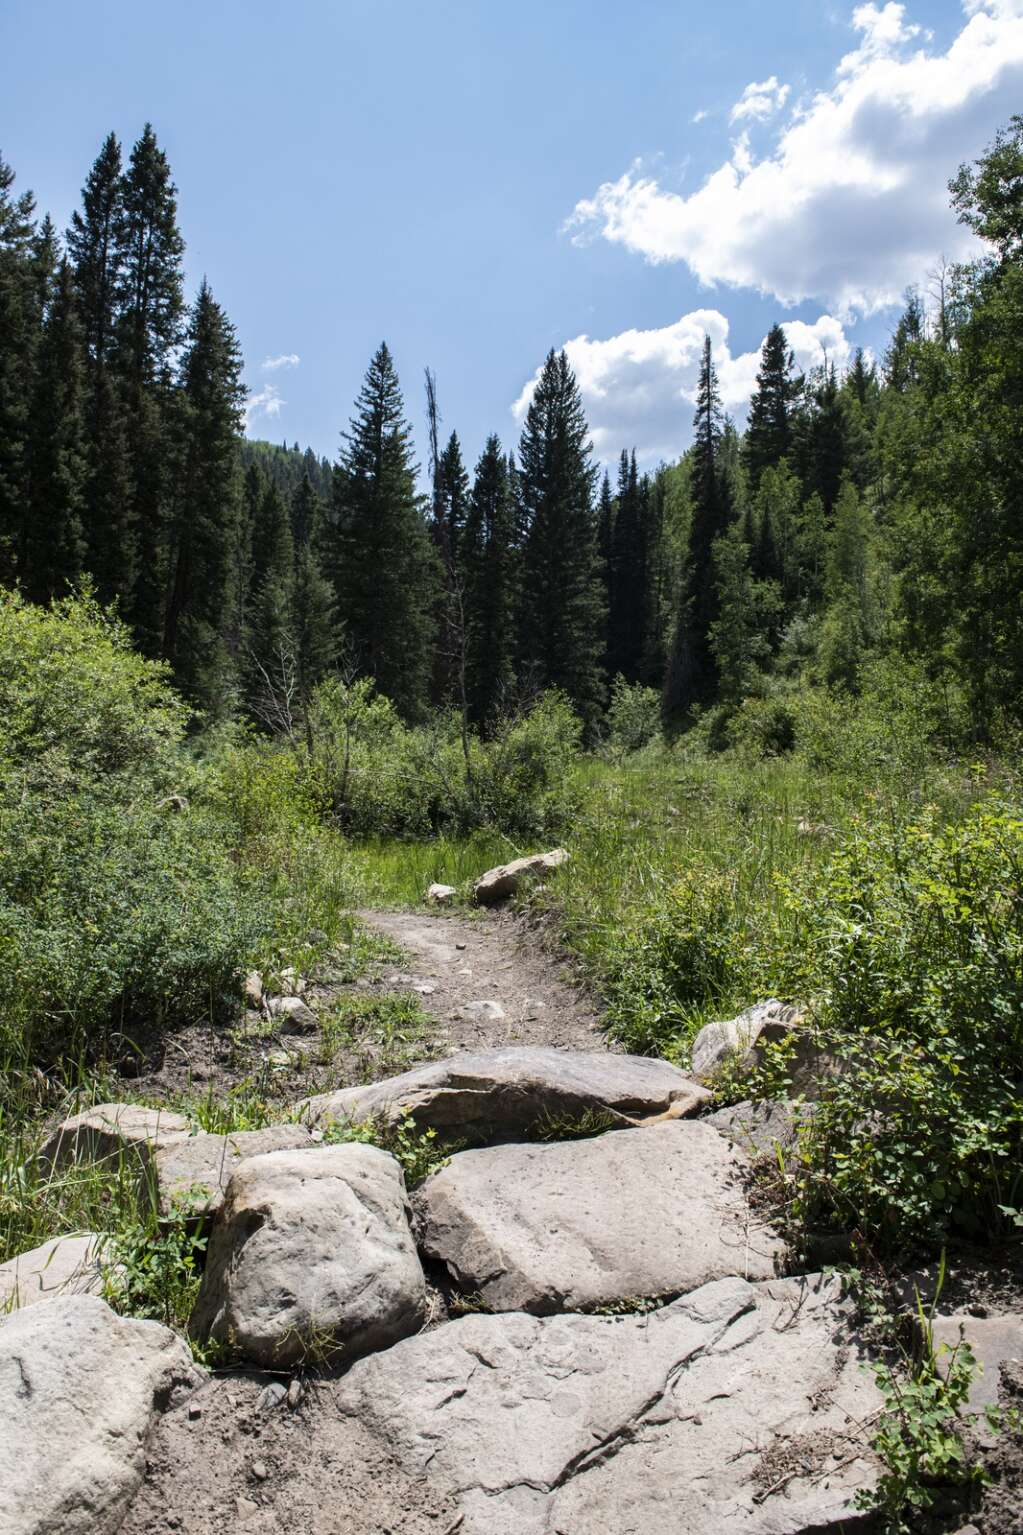 The Dutch Creek Trail has a variety of technical climbing features like rock gardens, creek crossings, and narrow corridors along its moderate difficulty single track in Coal Basin Ranch near Redstone on Thursday, July 29, 2021. (Kelsey Brunner/The Aspen Times)